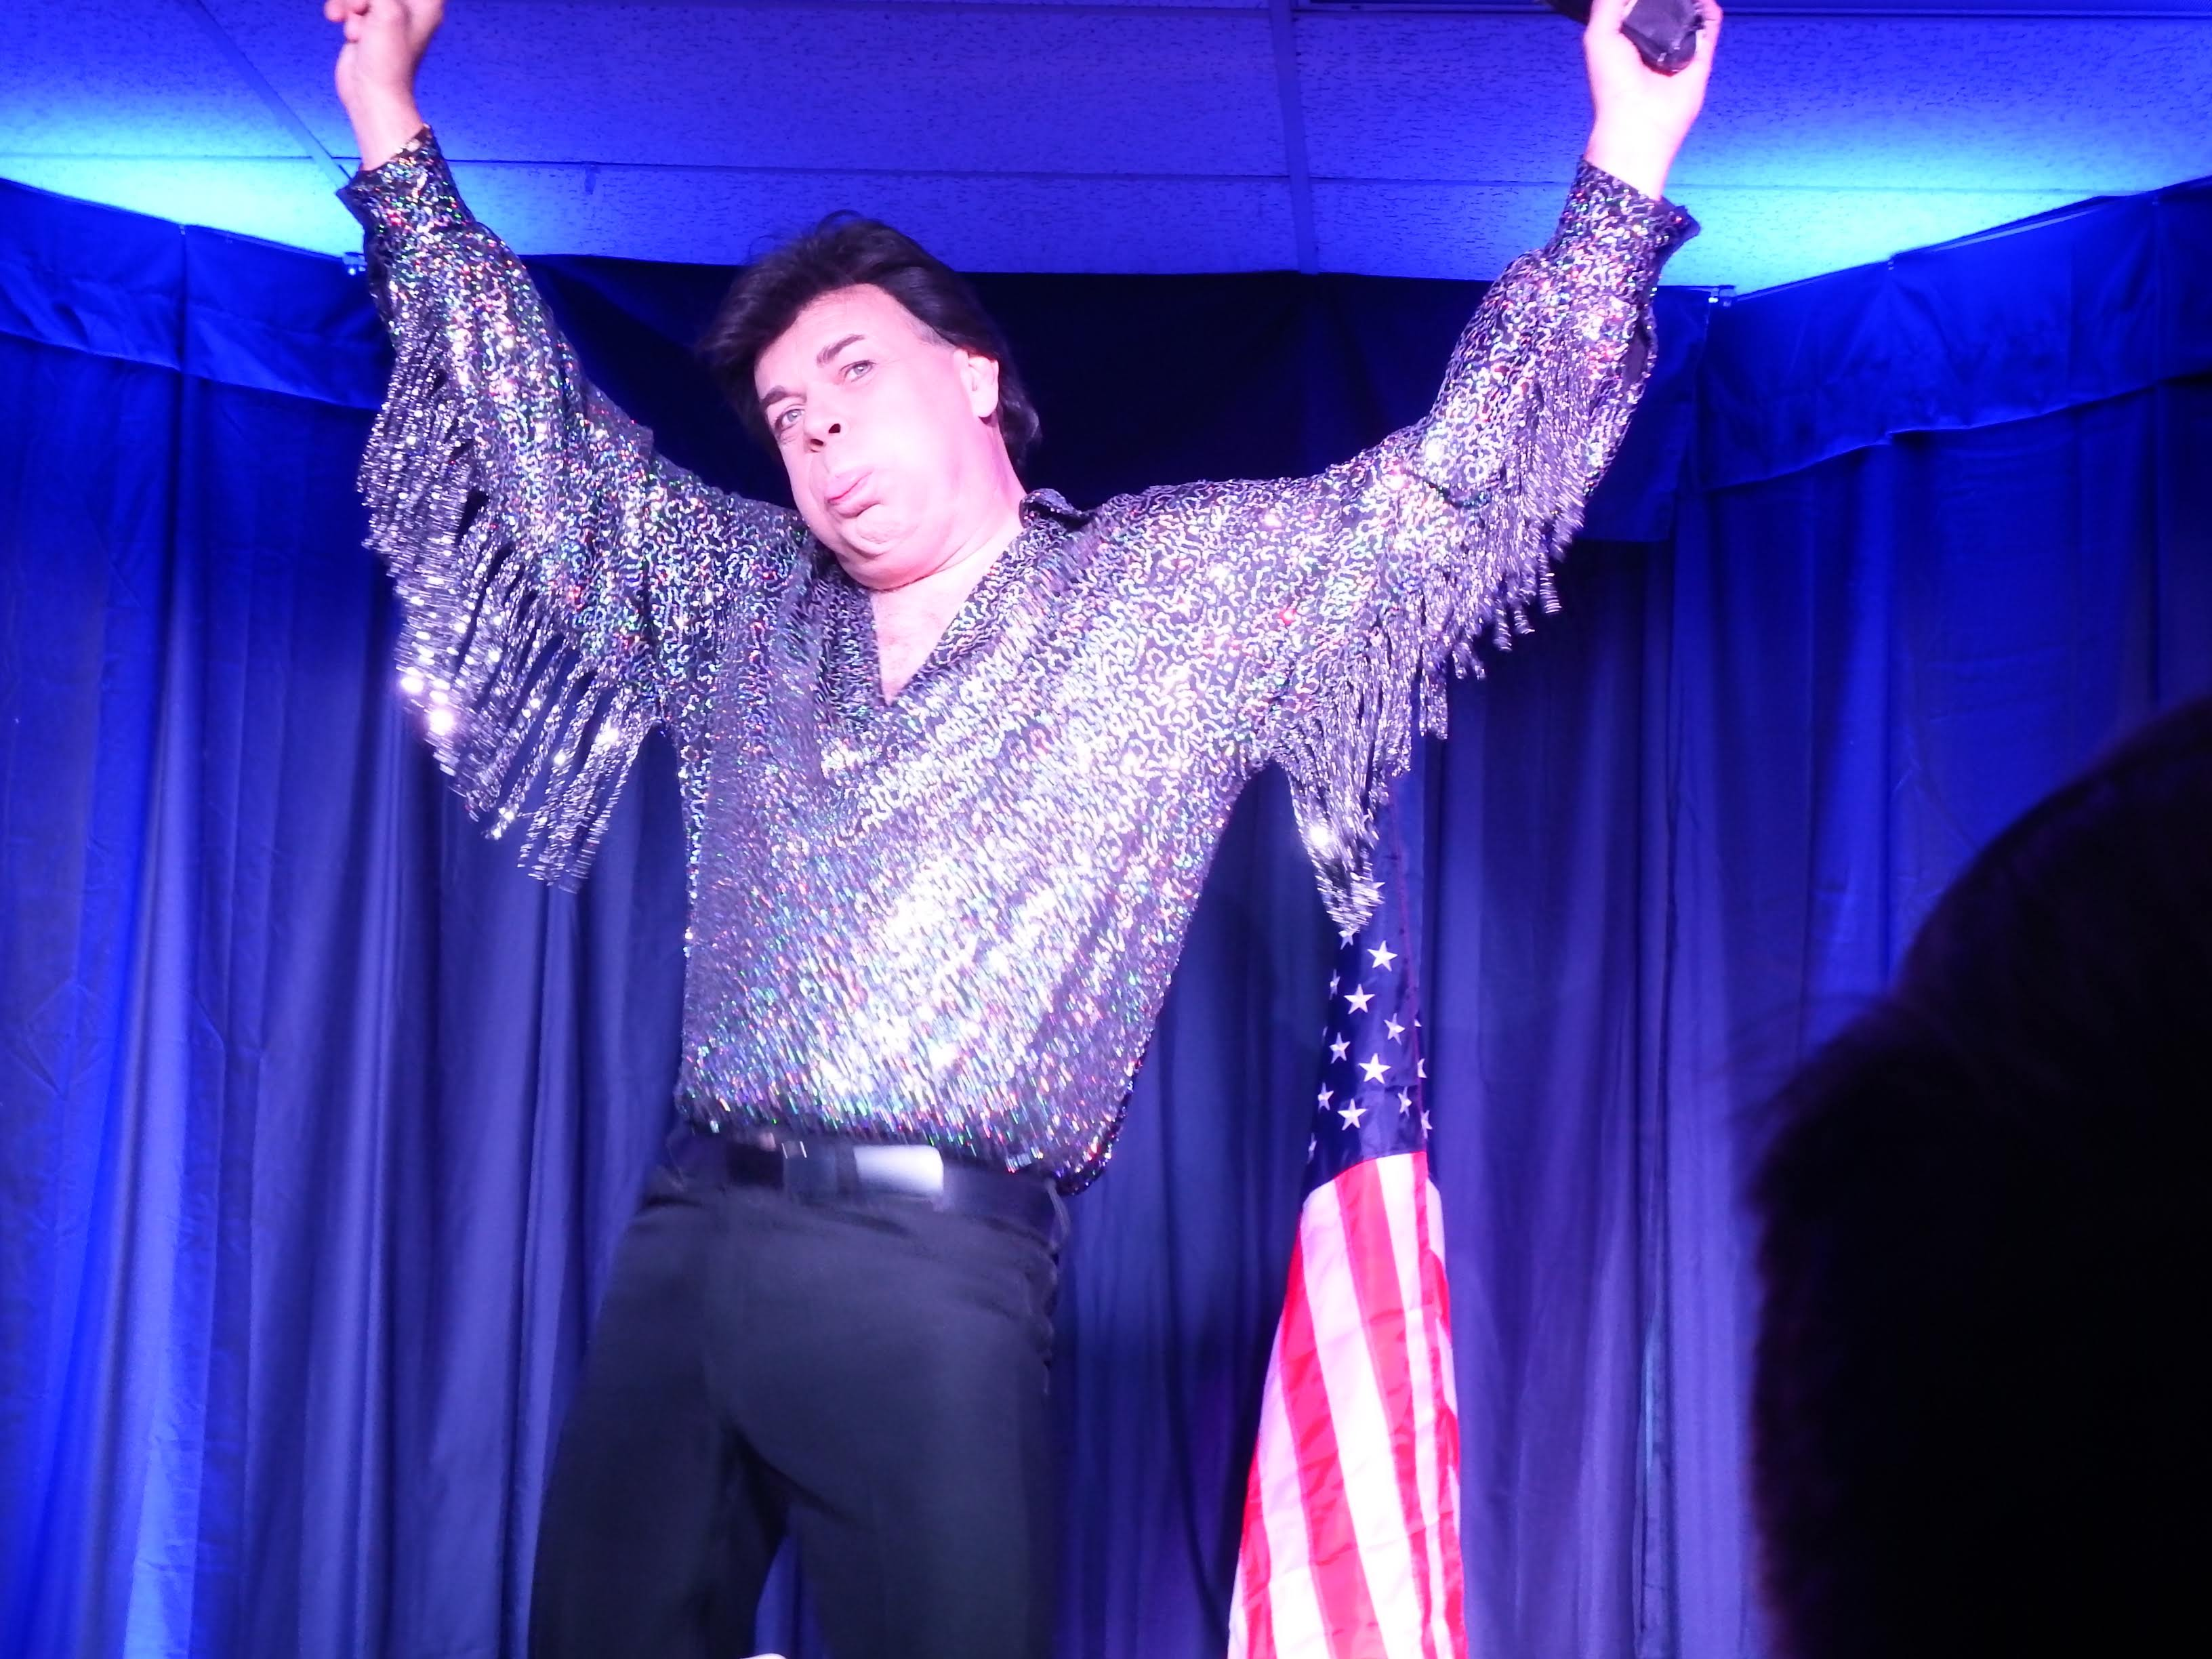 While performing during the Conway Twitty tribute Travis James gets a little crazy as Elvis Presley.